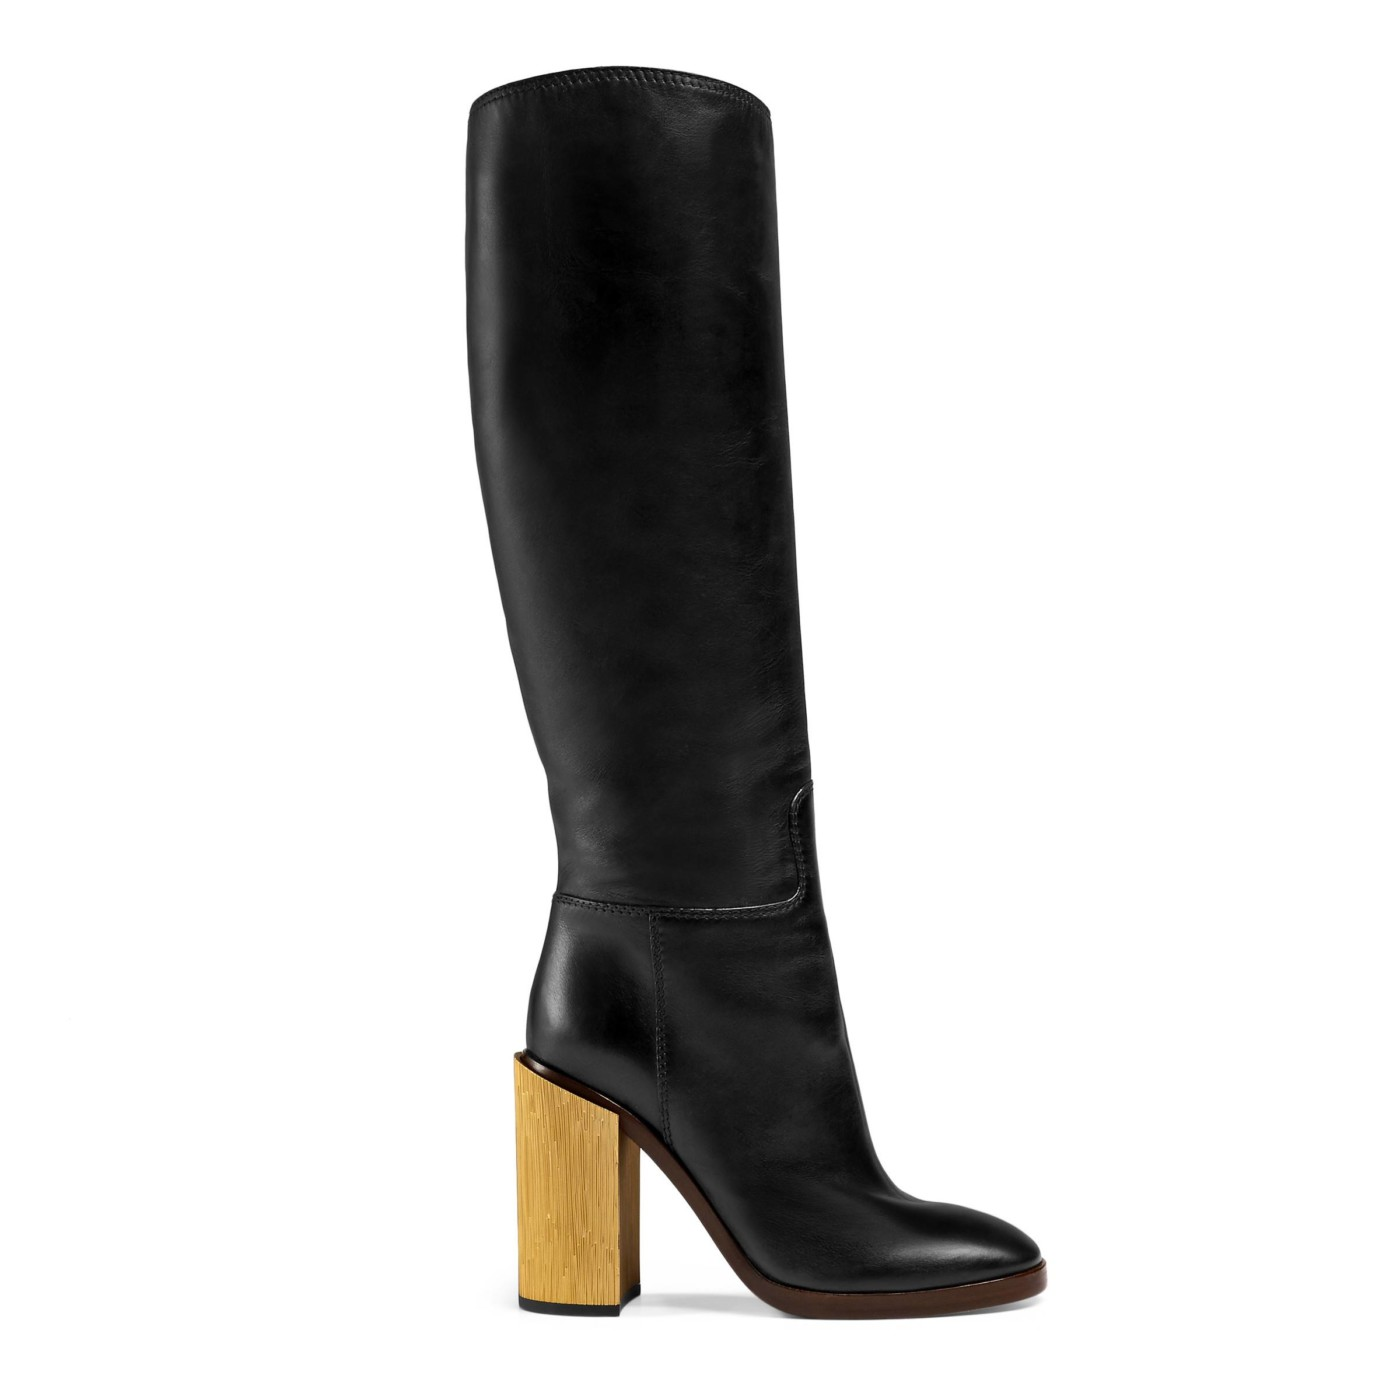 258157da9 Gucci Women's Black Leather Gold Heel Knee High Boots Shoes